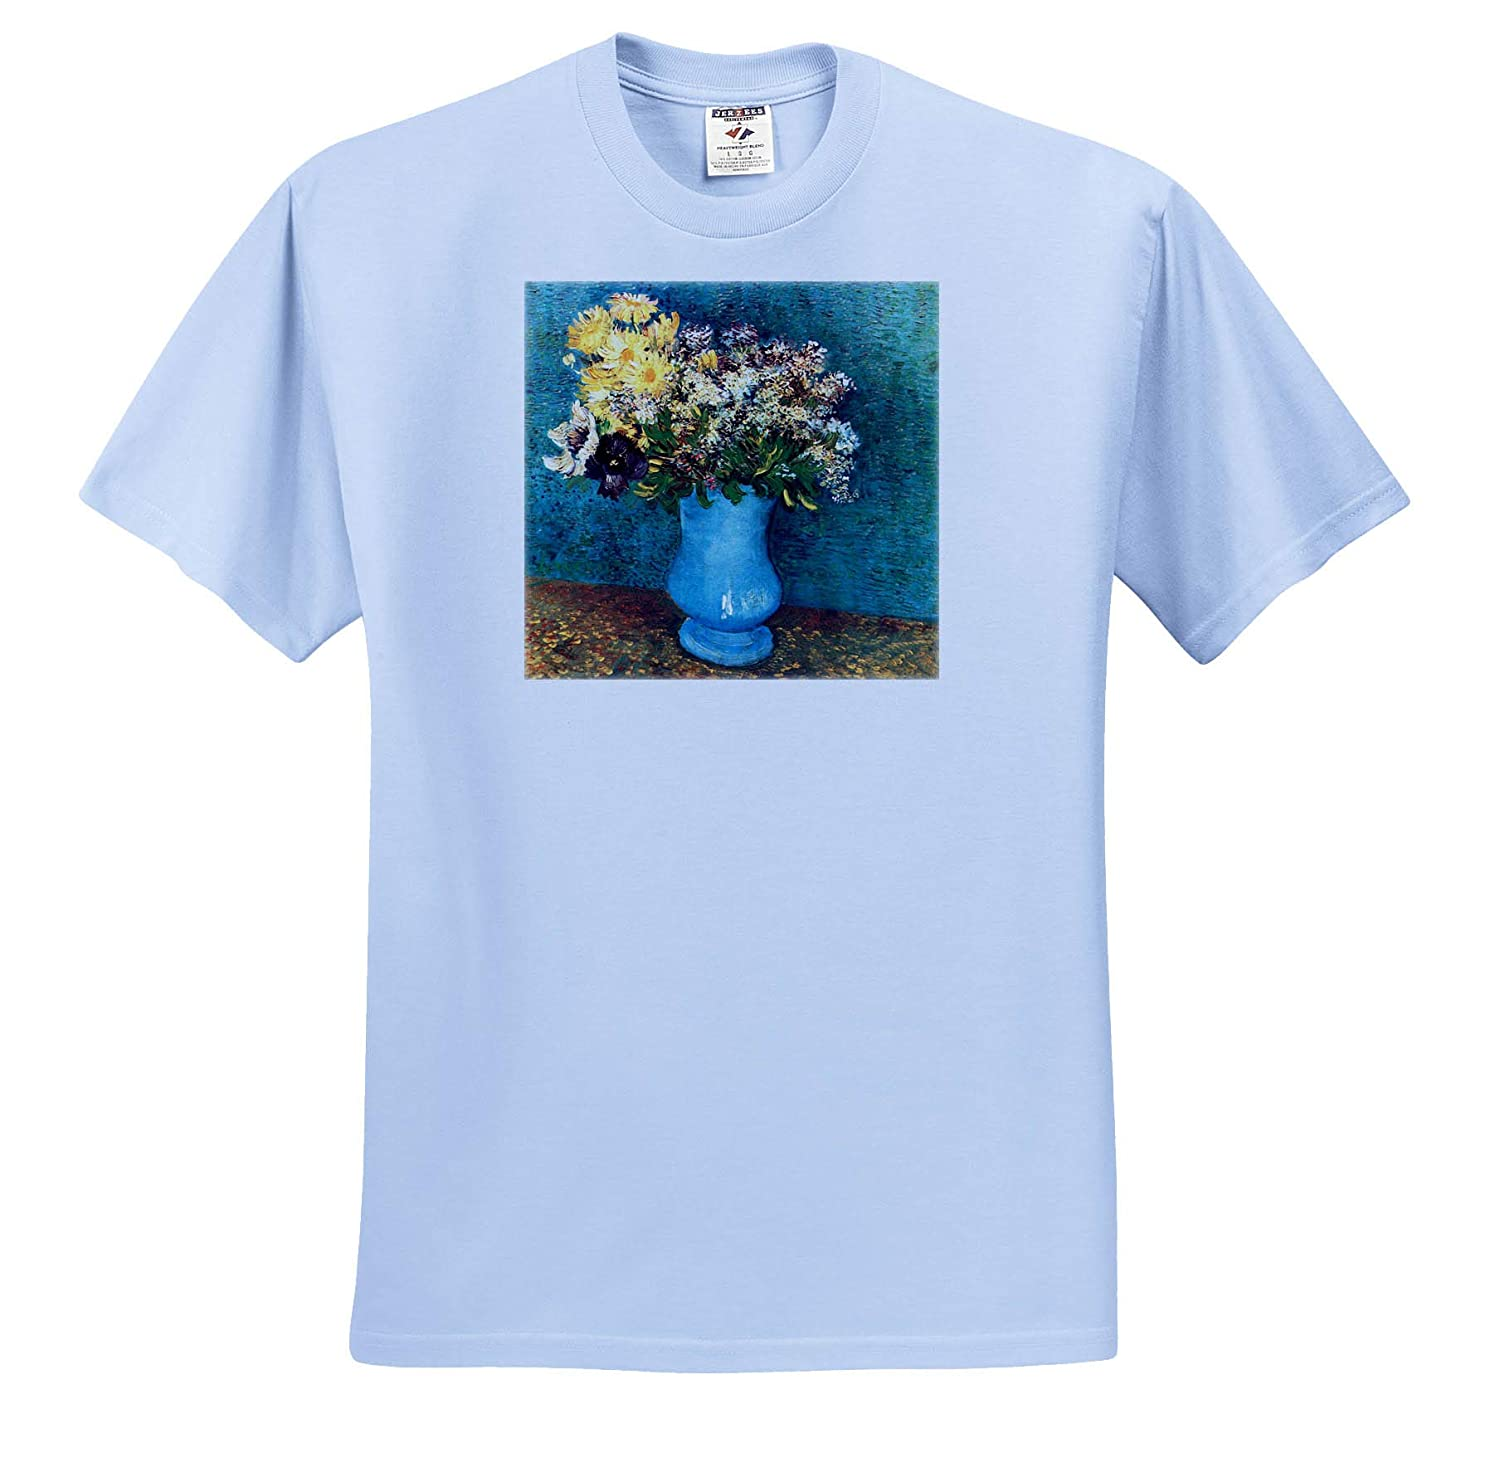 Masterpieces 3dRose VintageChest T-Shirts Van Gogh Vase with Syringas Daisies and Anemones